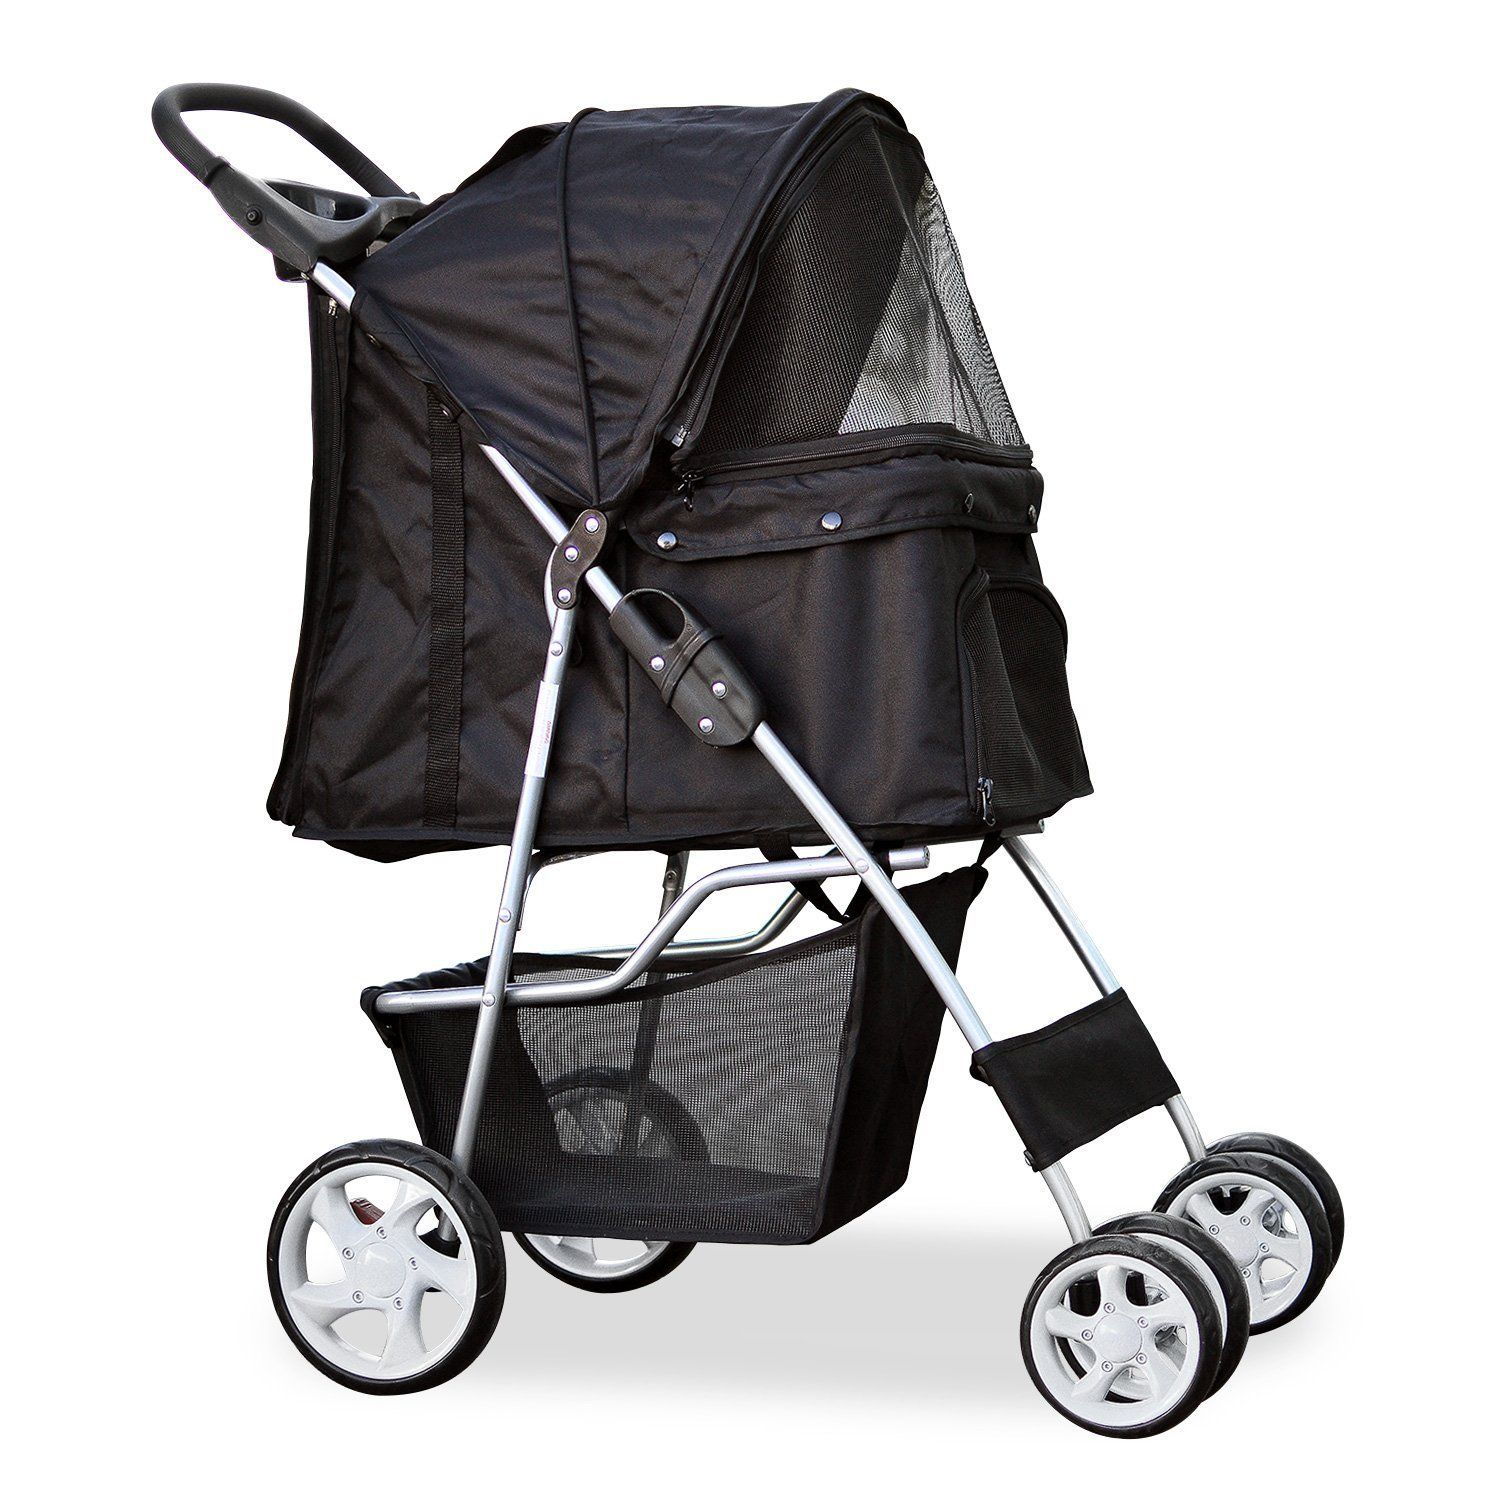 PetsN'all Foldable Pet Stroller * Trust me, this is great